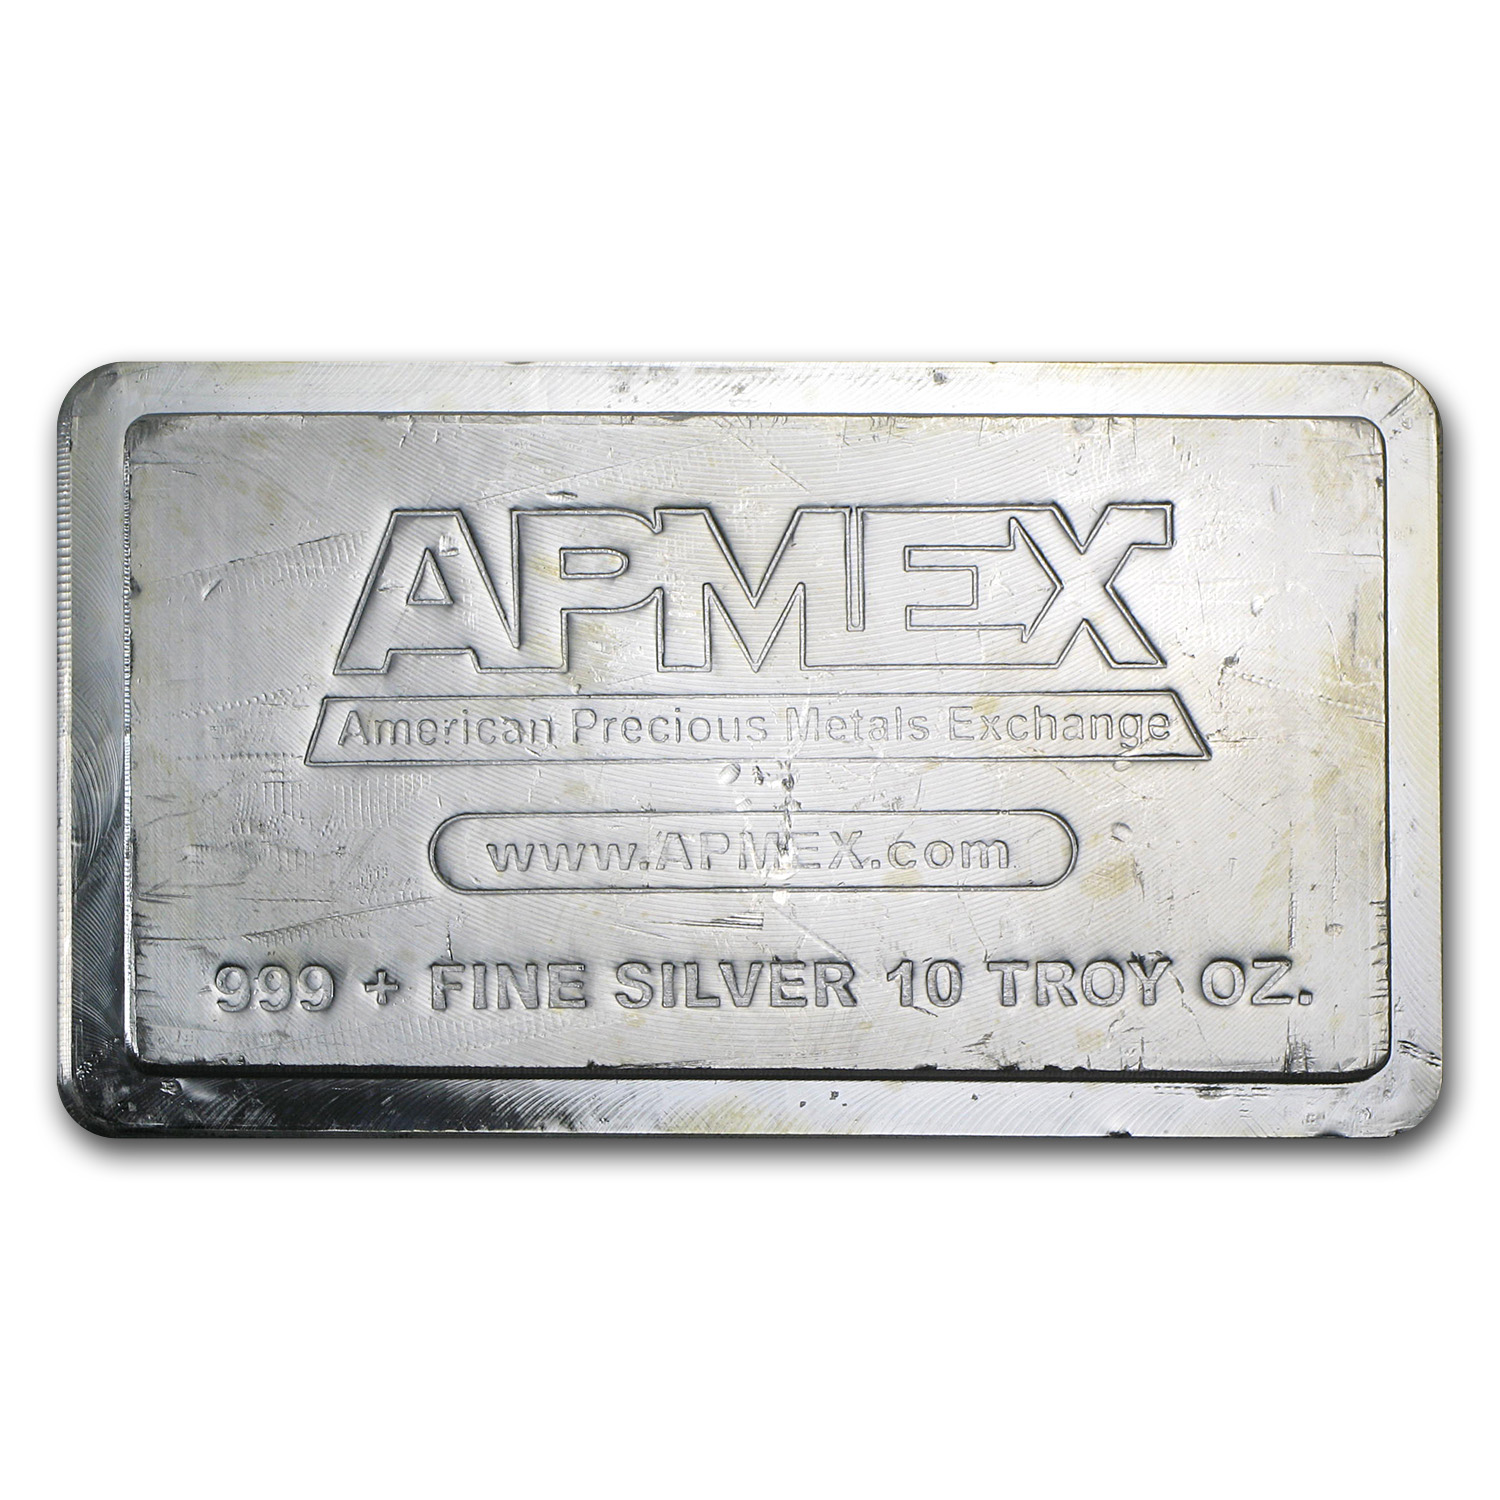 10 oz Silver Bar - APMEX (Stackable, IRA Approved, Scruffy)